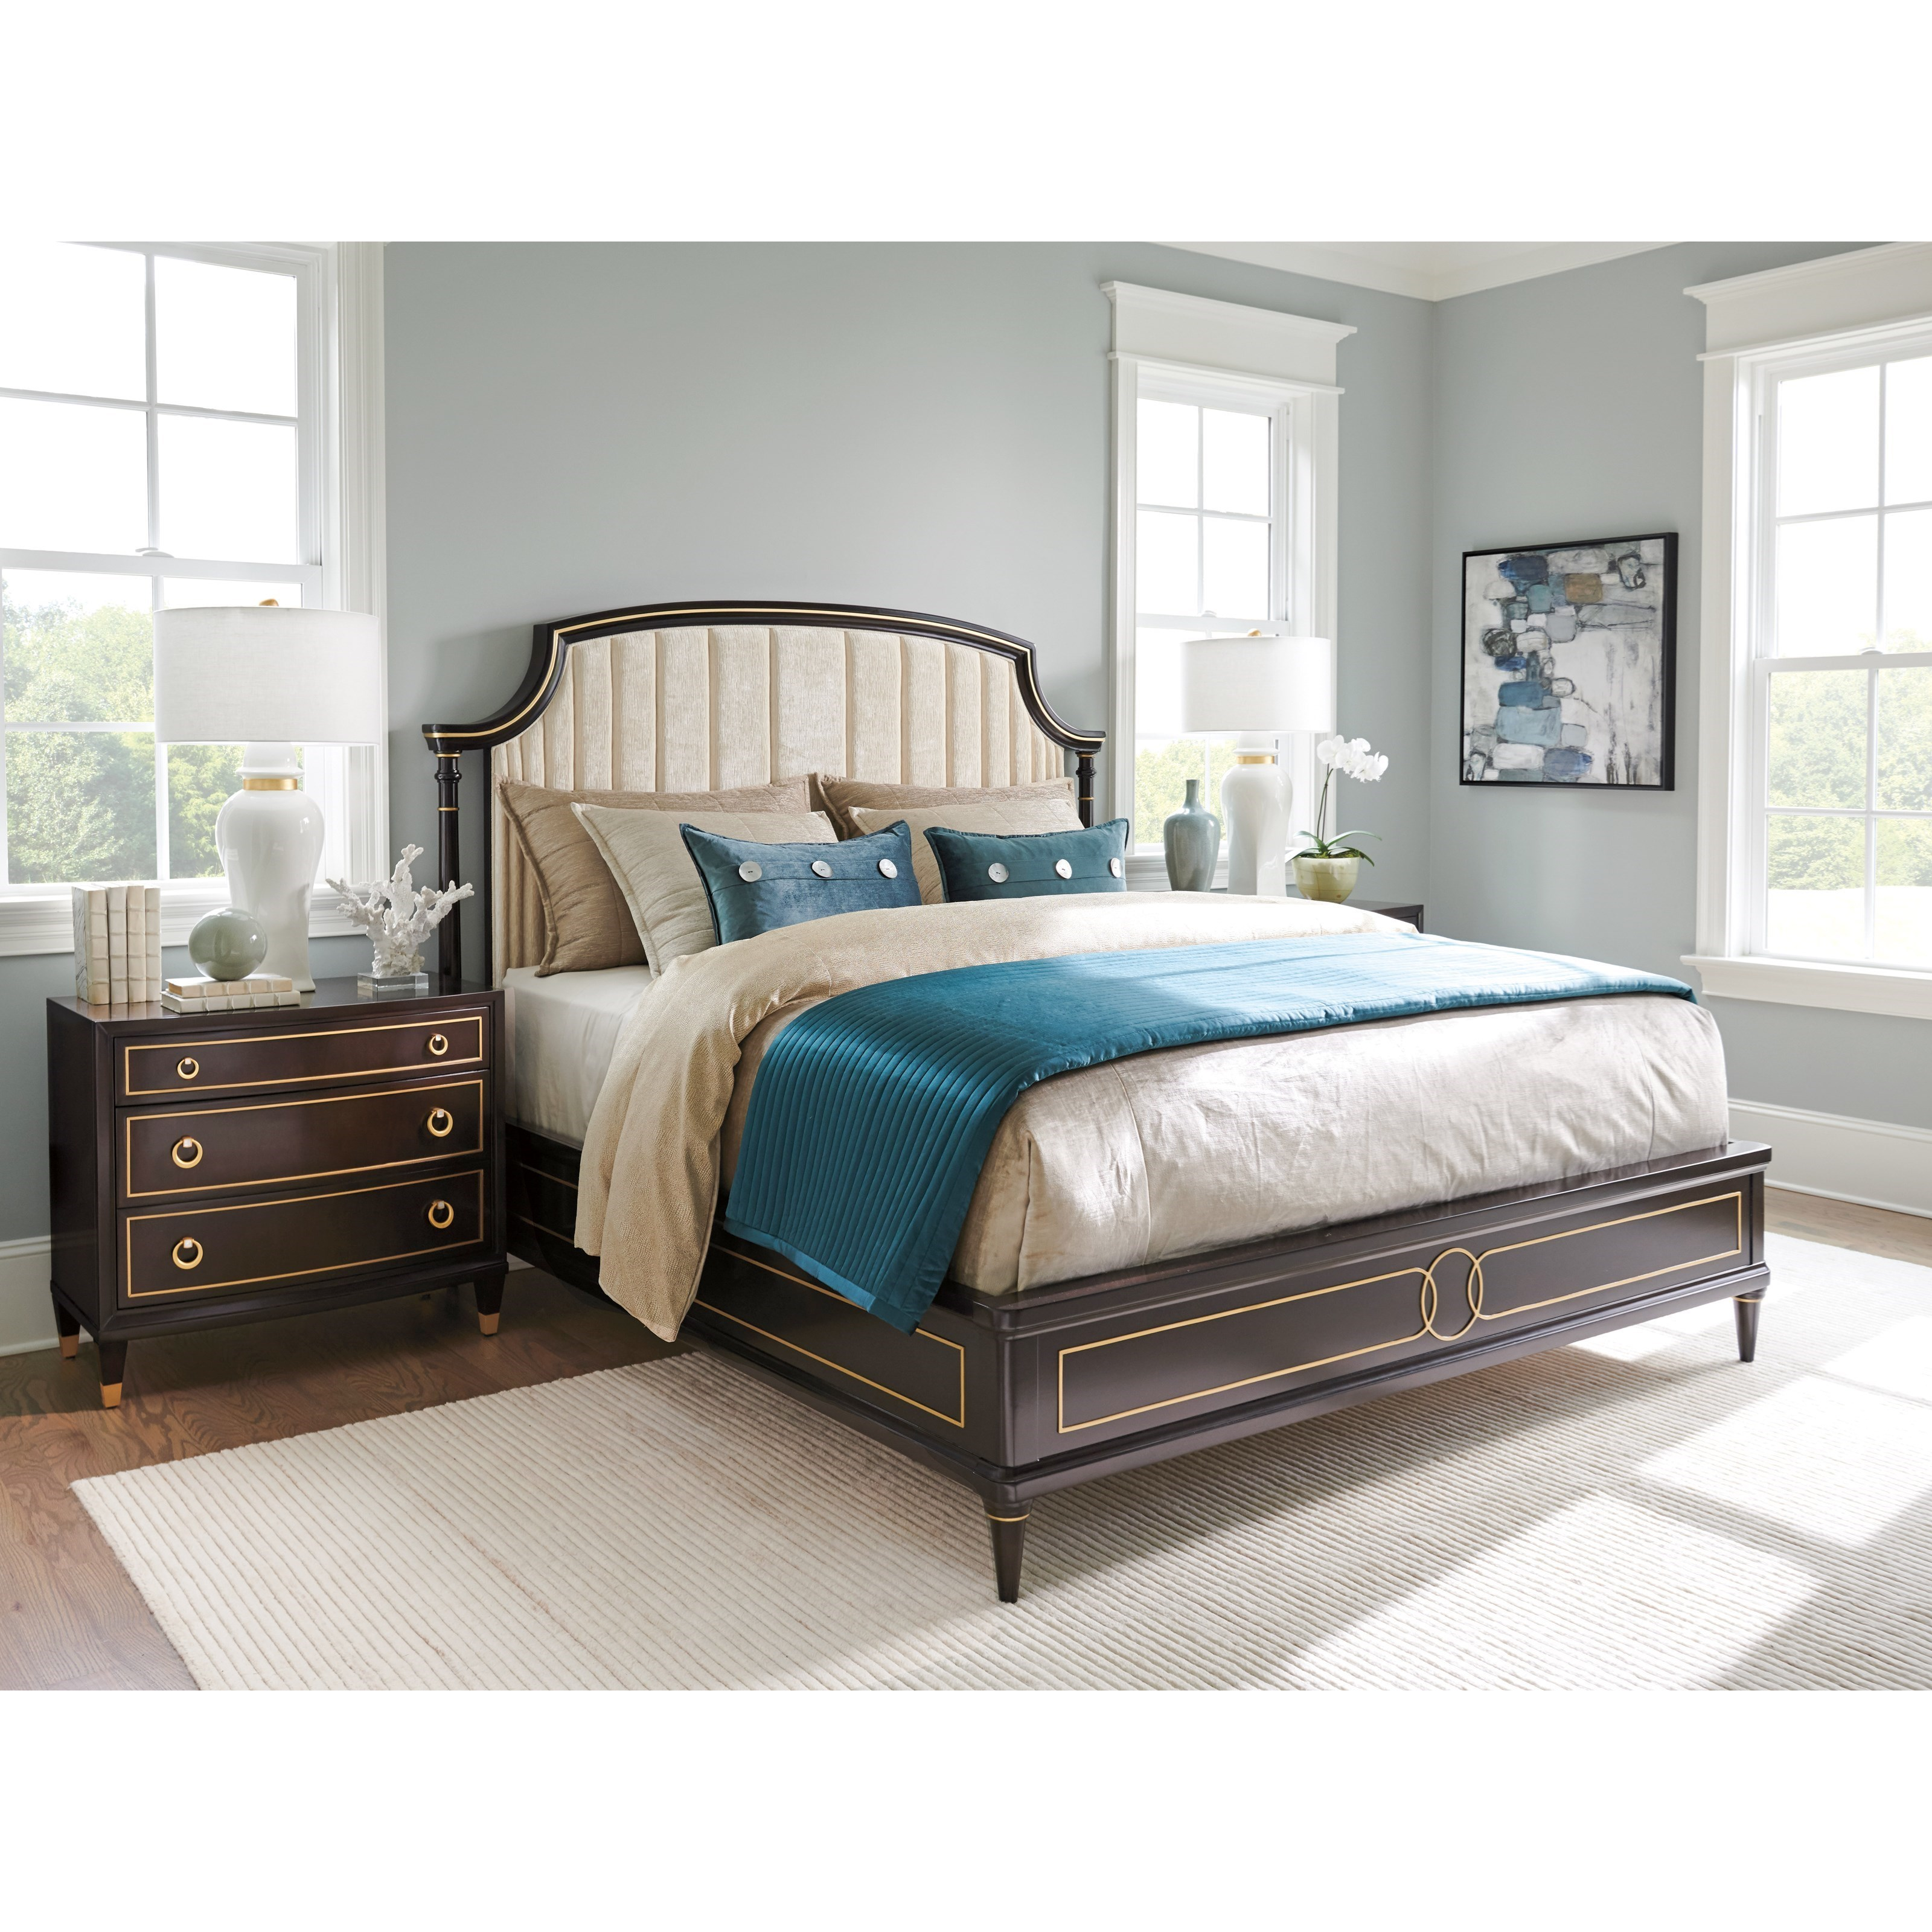 Carlyle Queen Bedroom Group by Lexington at Baer's Furniture